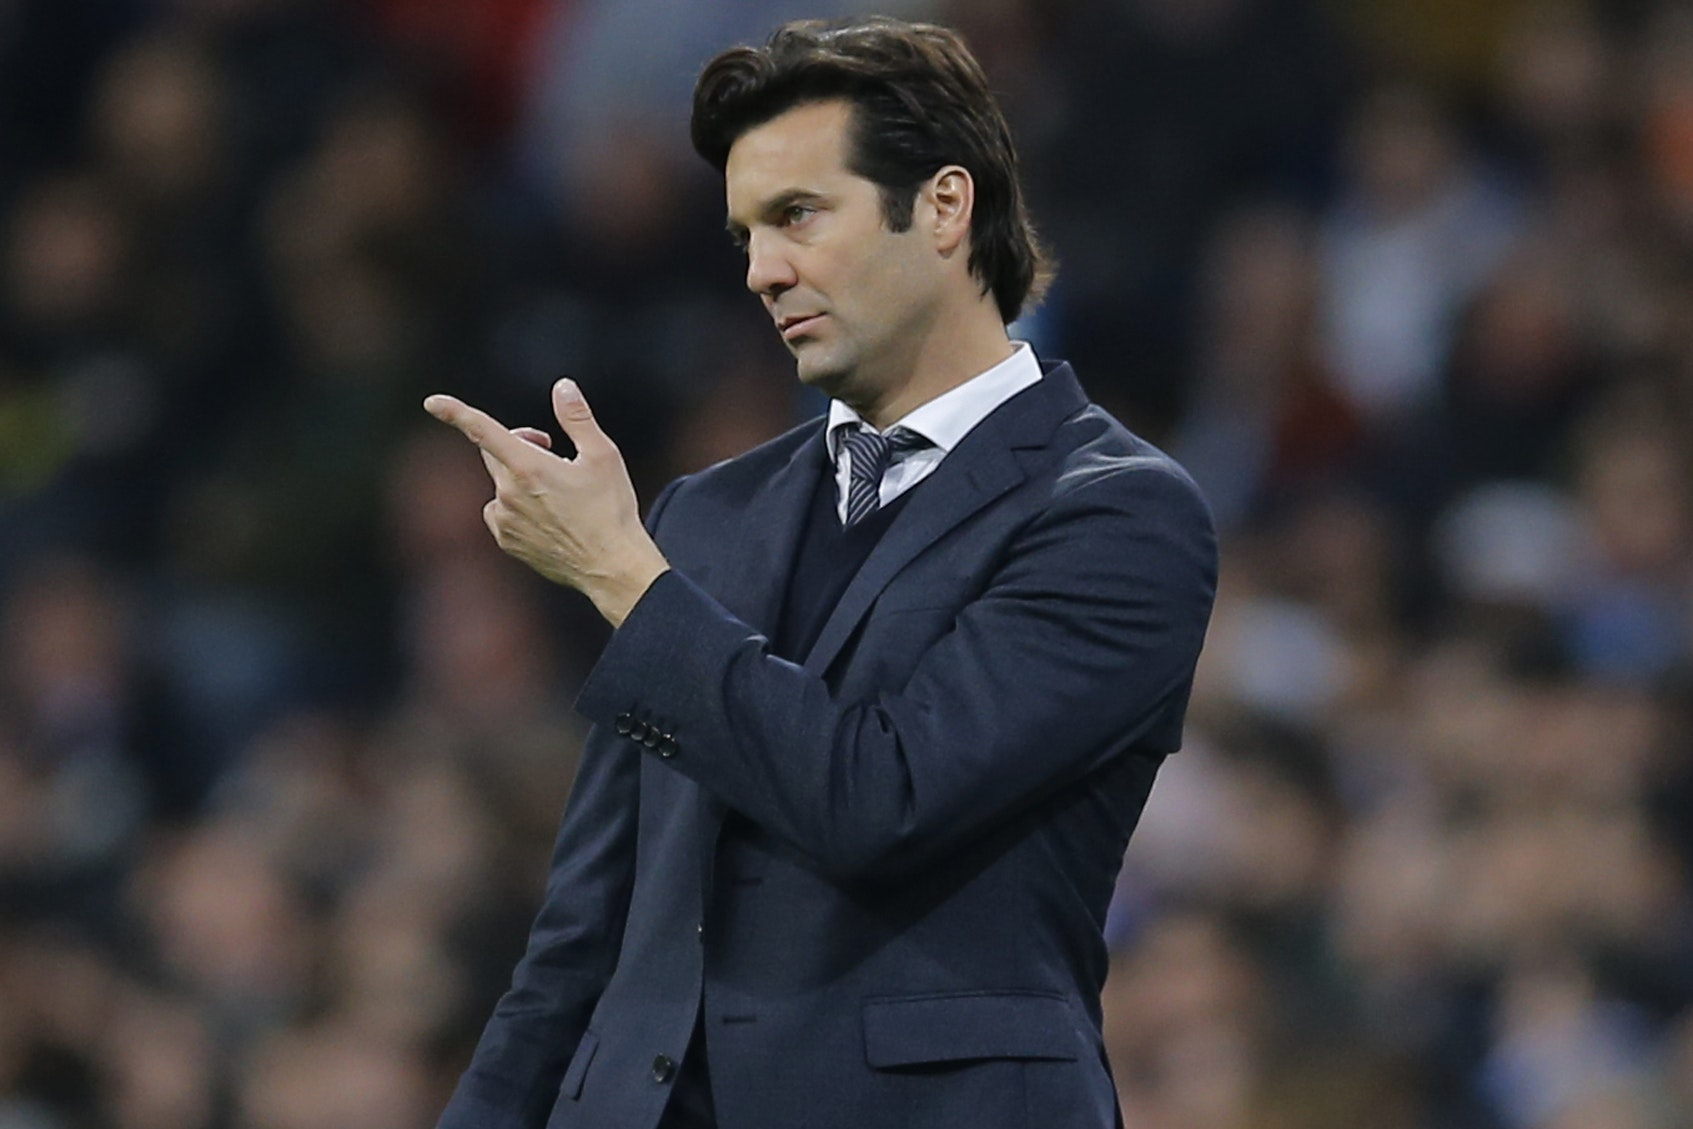 Real Madrid head coach Santiago Solari has told his players to forget about the FIFA Club World Cup